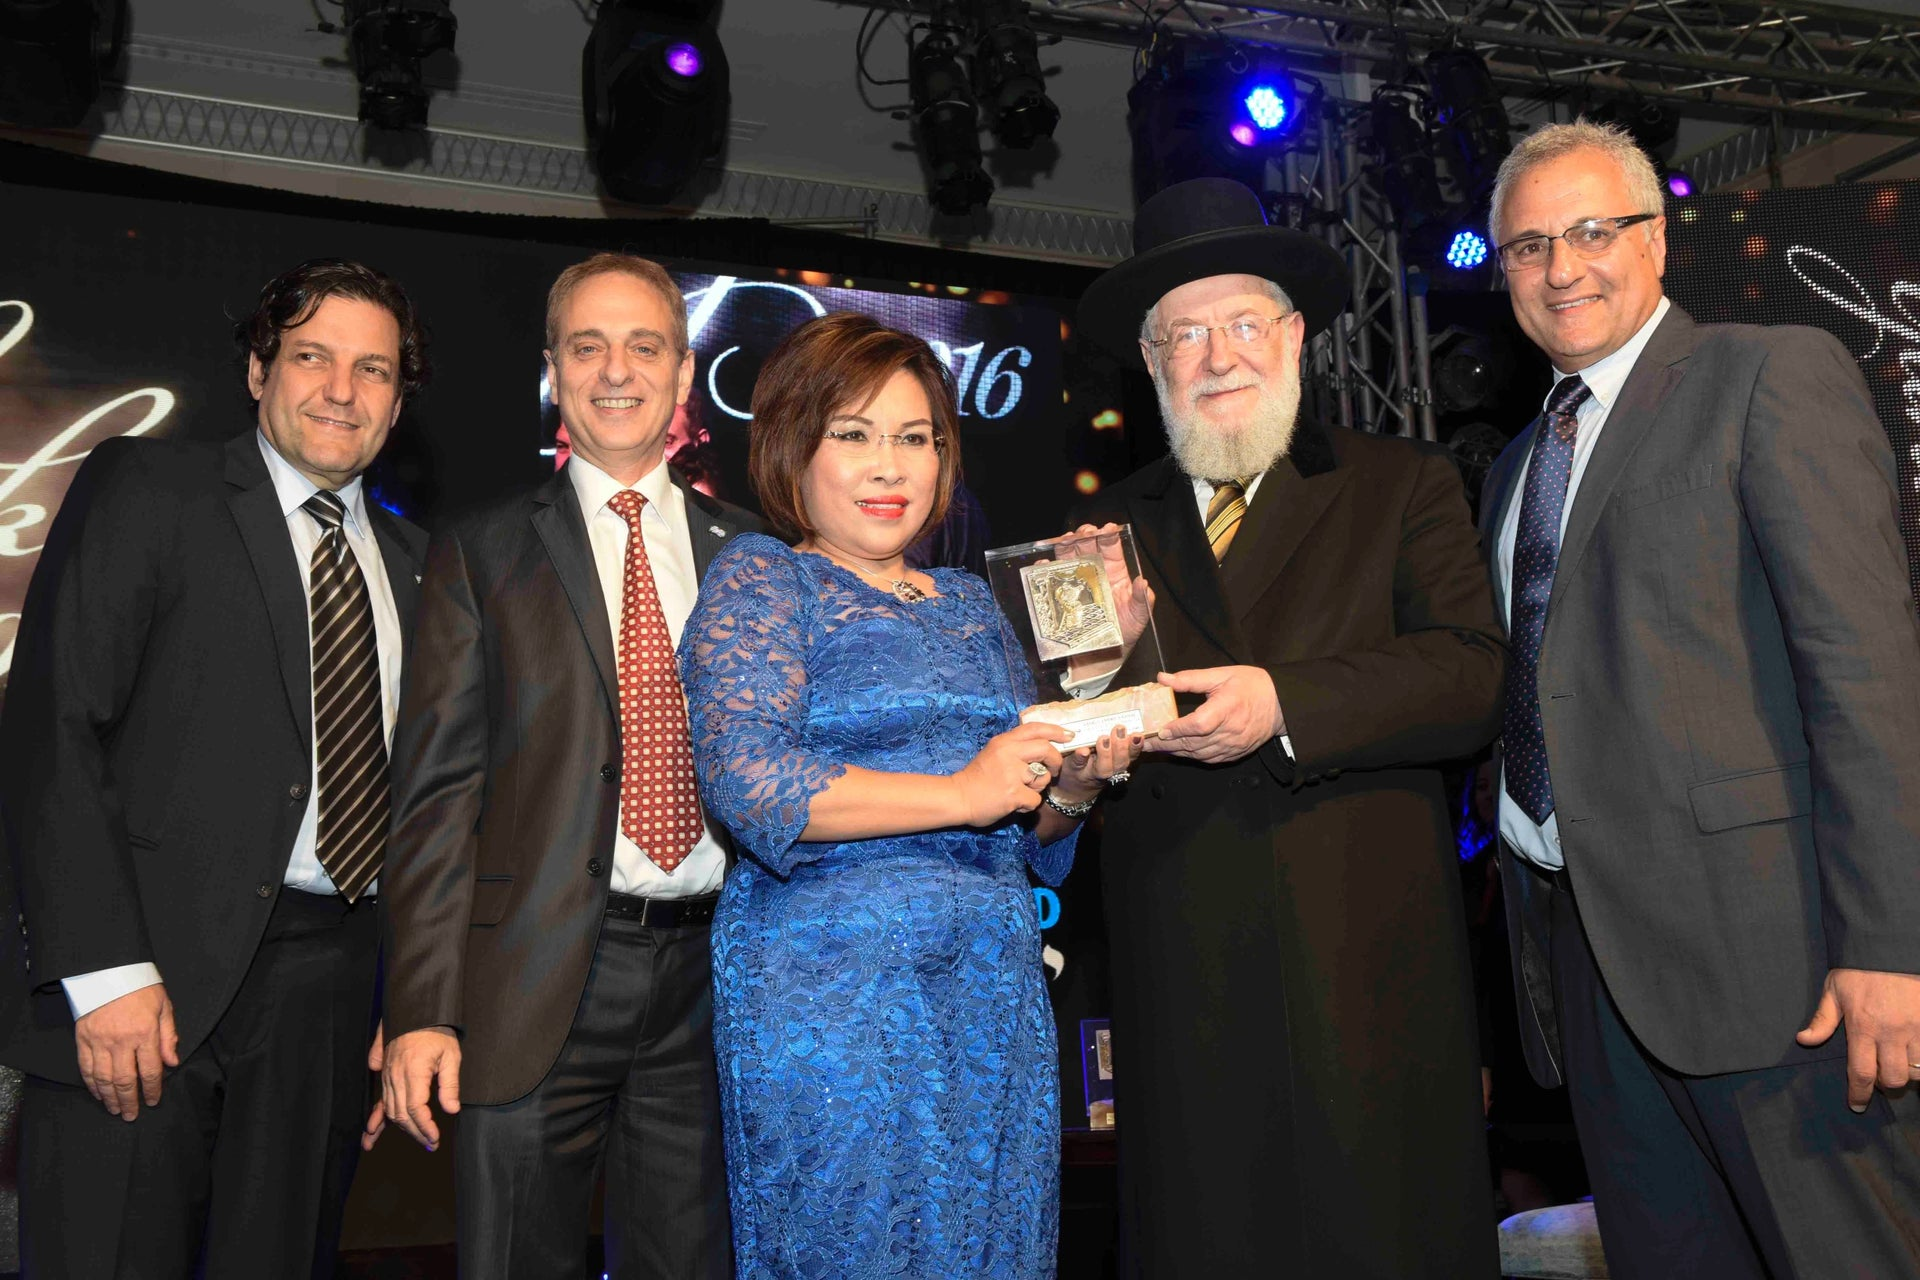 Sherly America-Gossal receiving her Keren Hayesod award from former chief rabbi and current rabbi of Tel Aviv Yisrael Meir Lau at ceremony a held in May 2016.